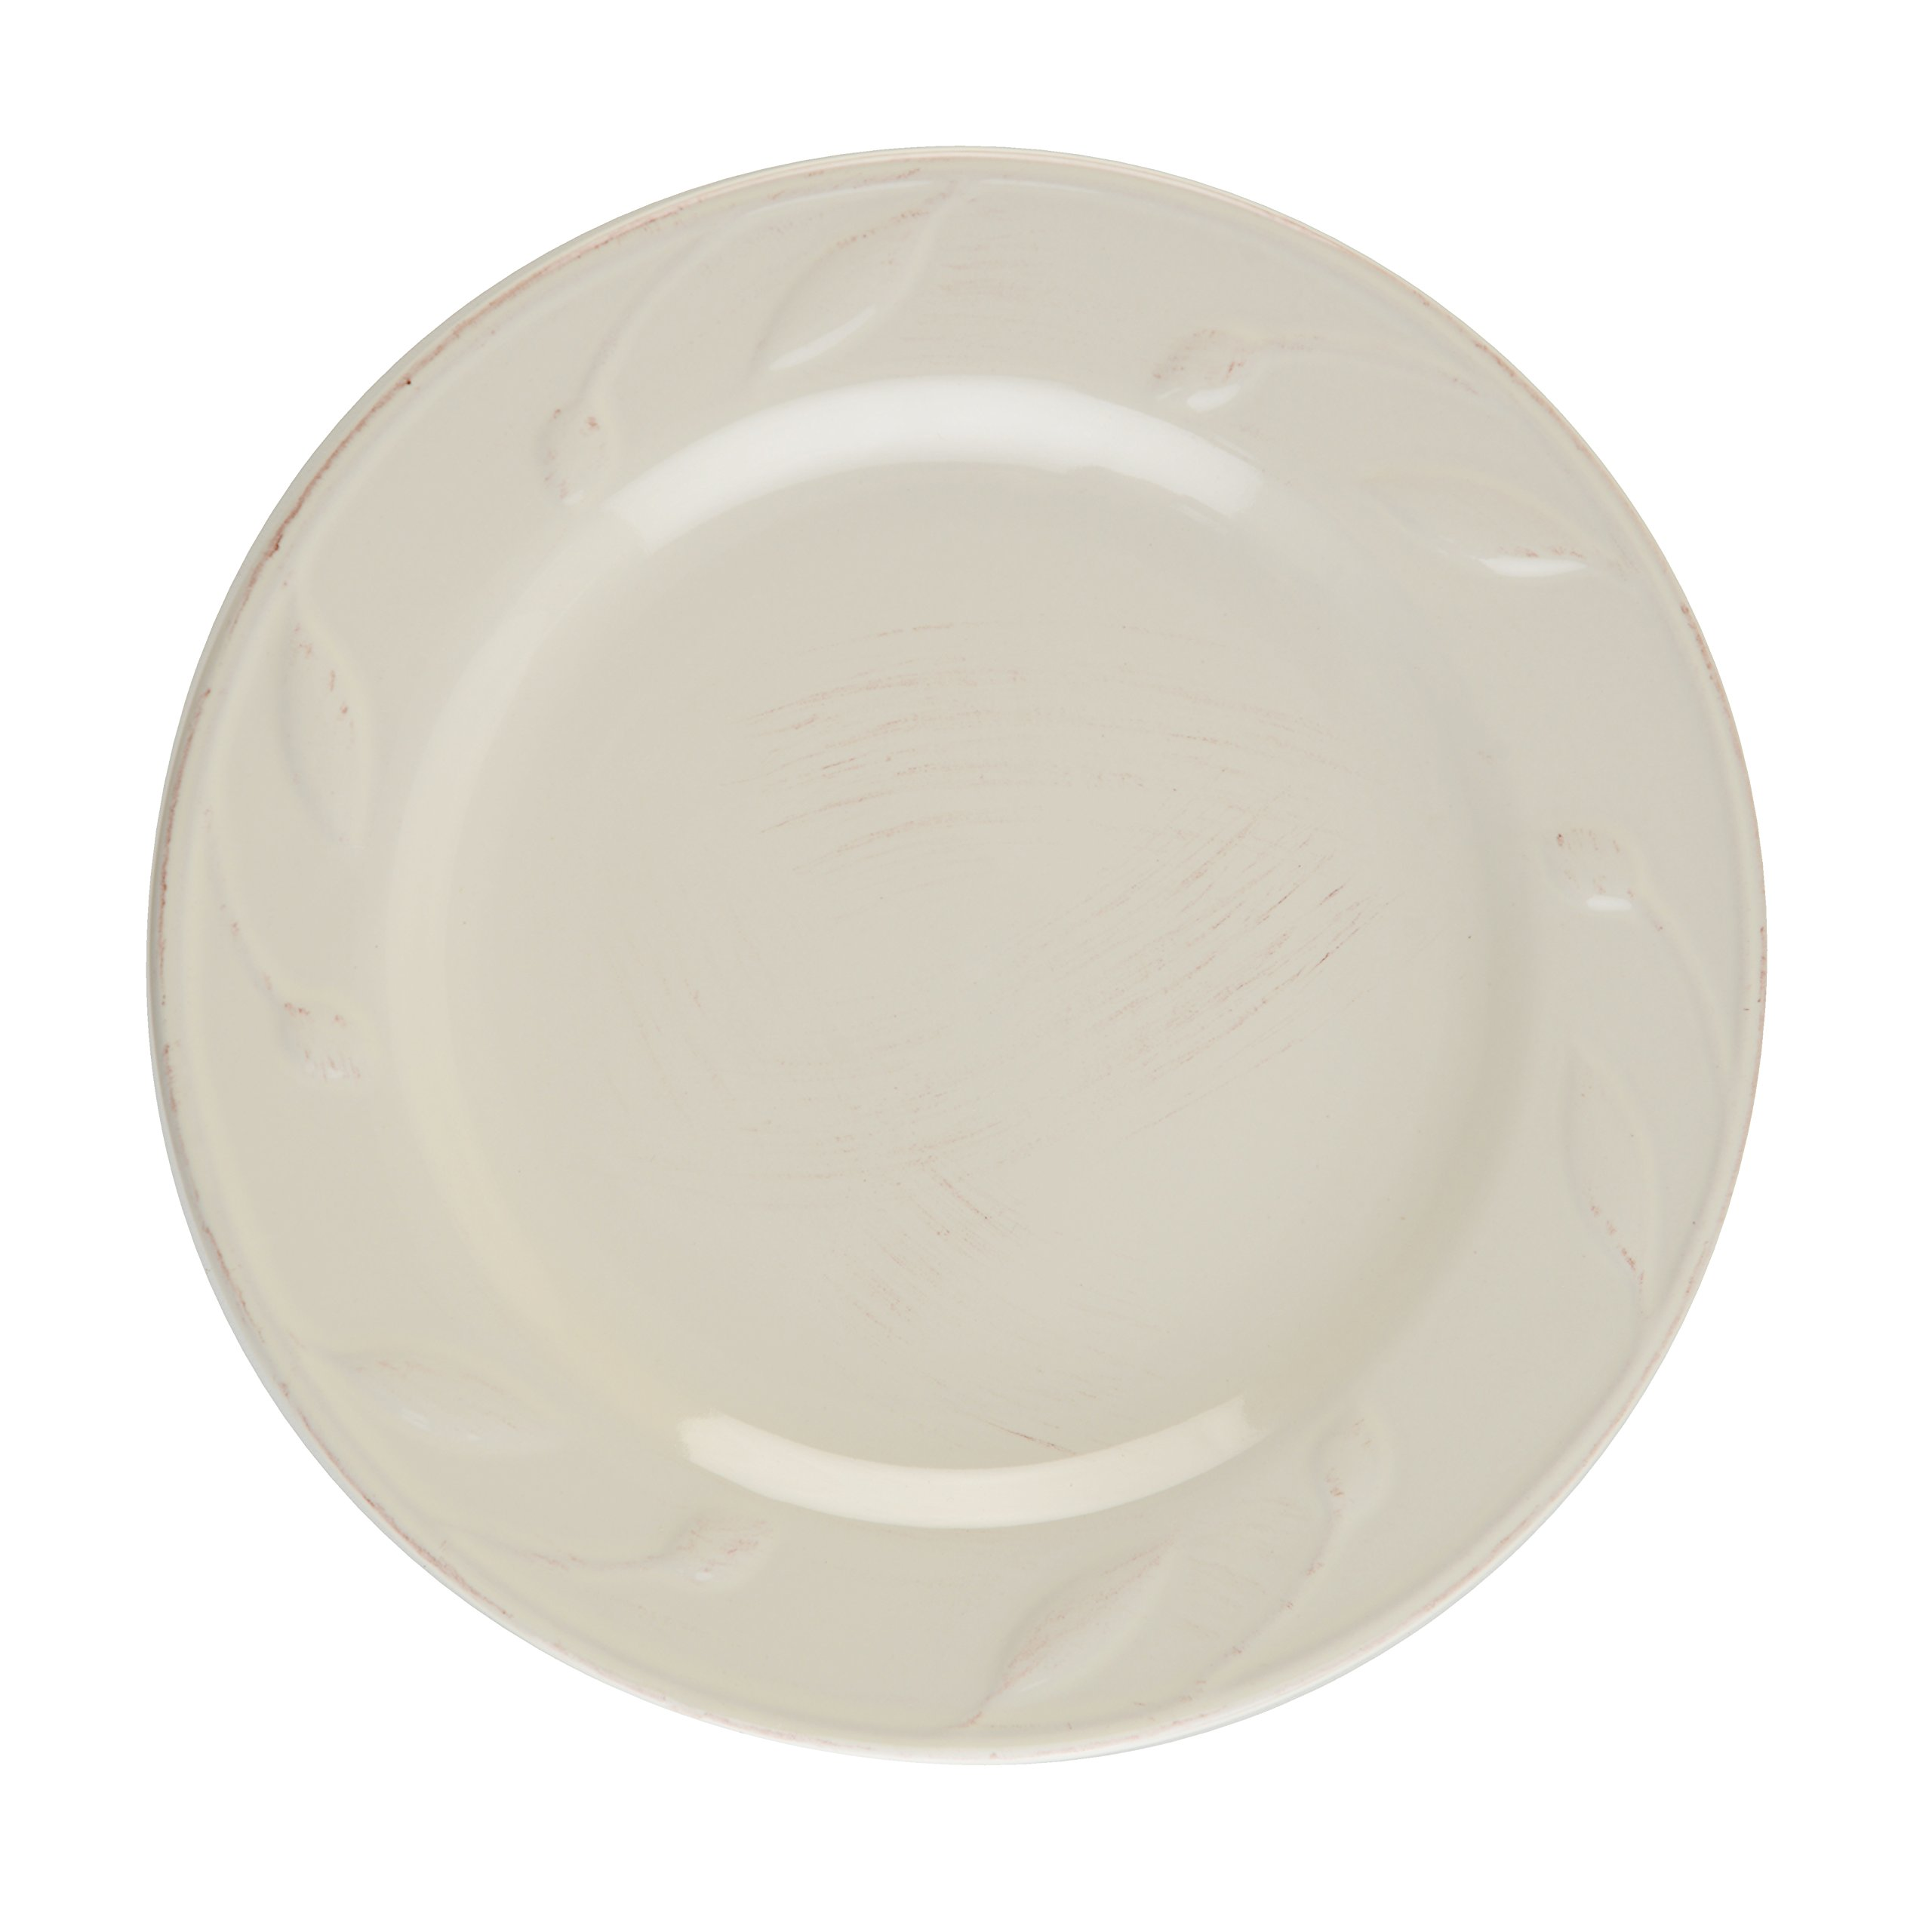 Signature Housewares Sorrento Collection Set of 4 Salad Plates, 8-Inch, Ivory